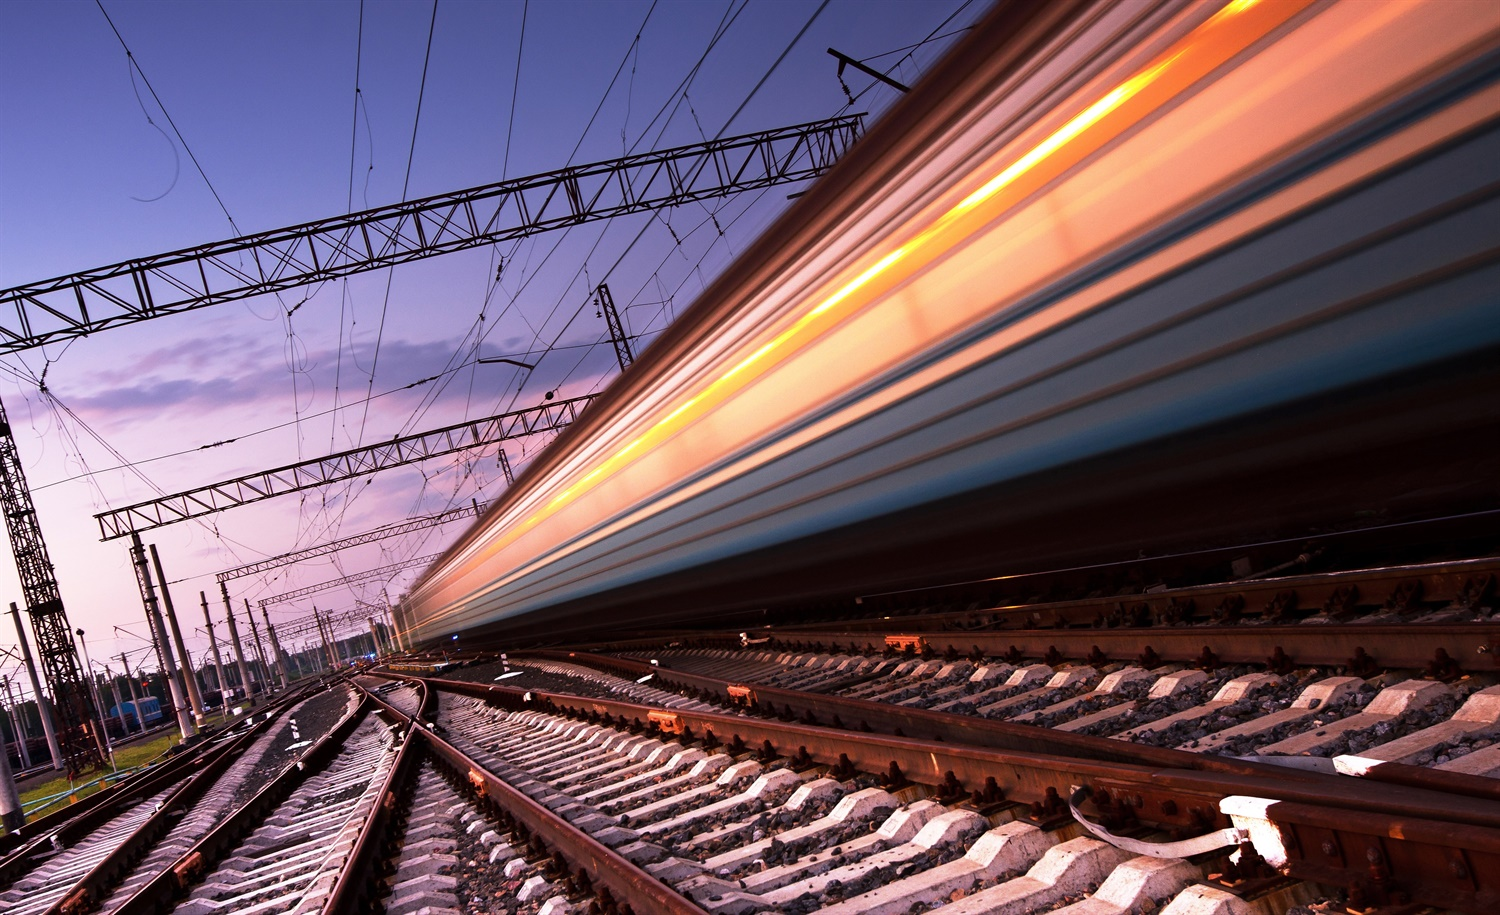 120 NPH leaders call for HS2 to be delivered in full